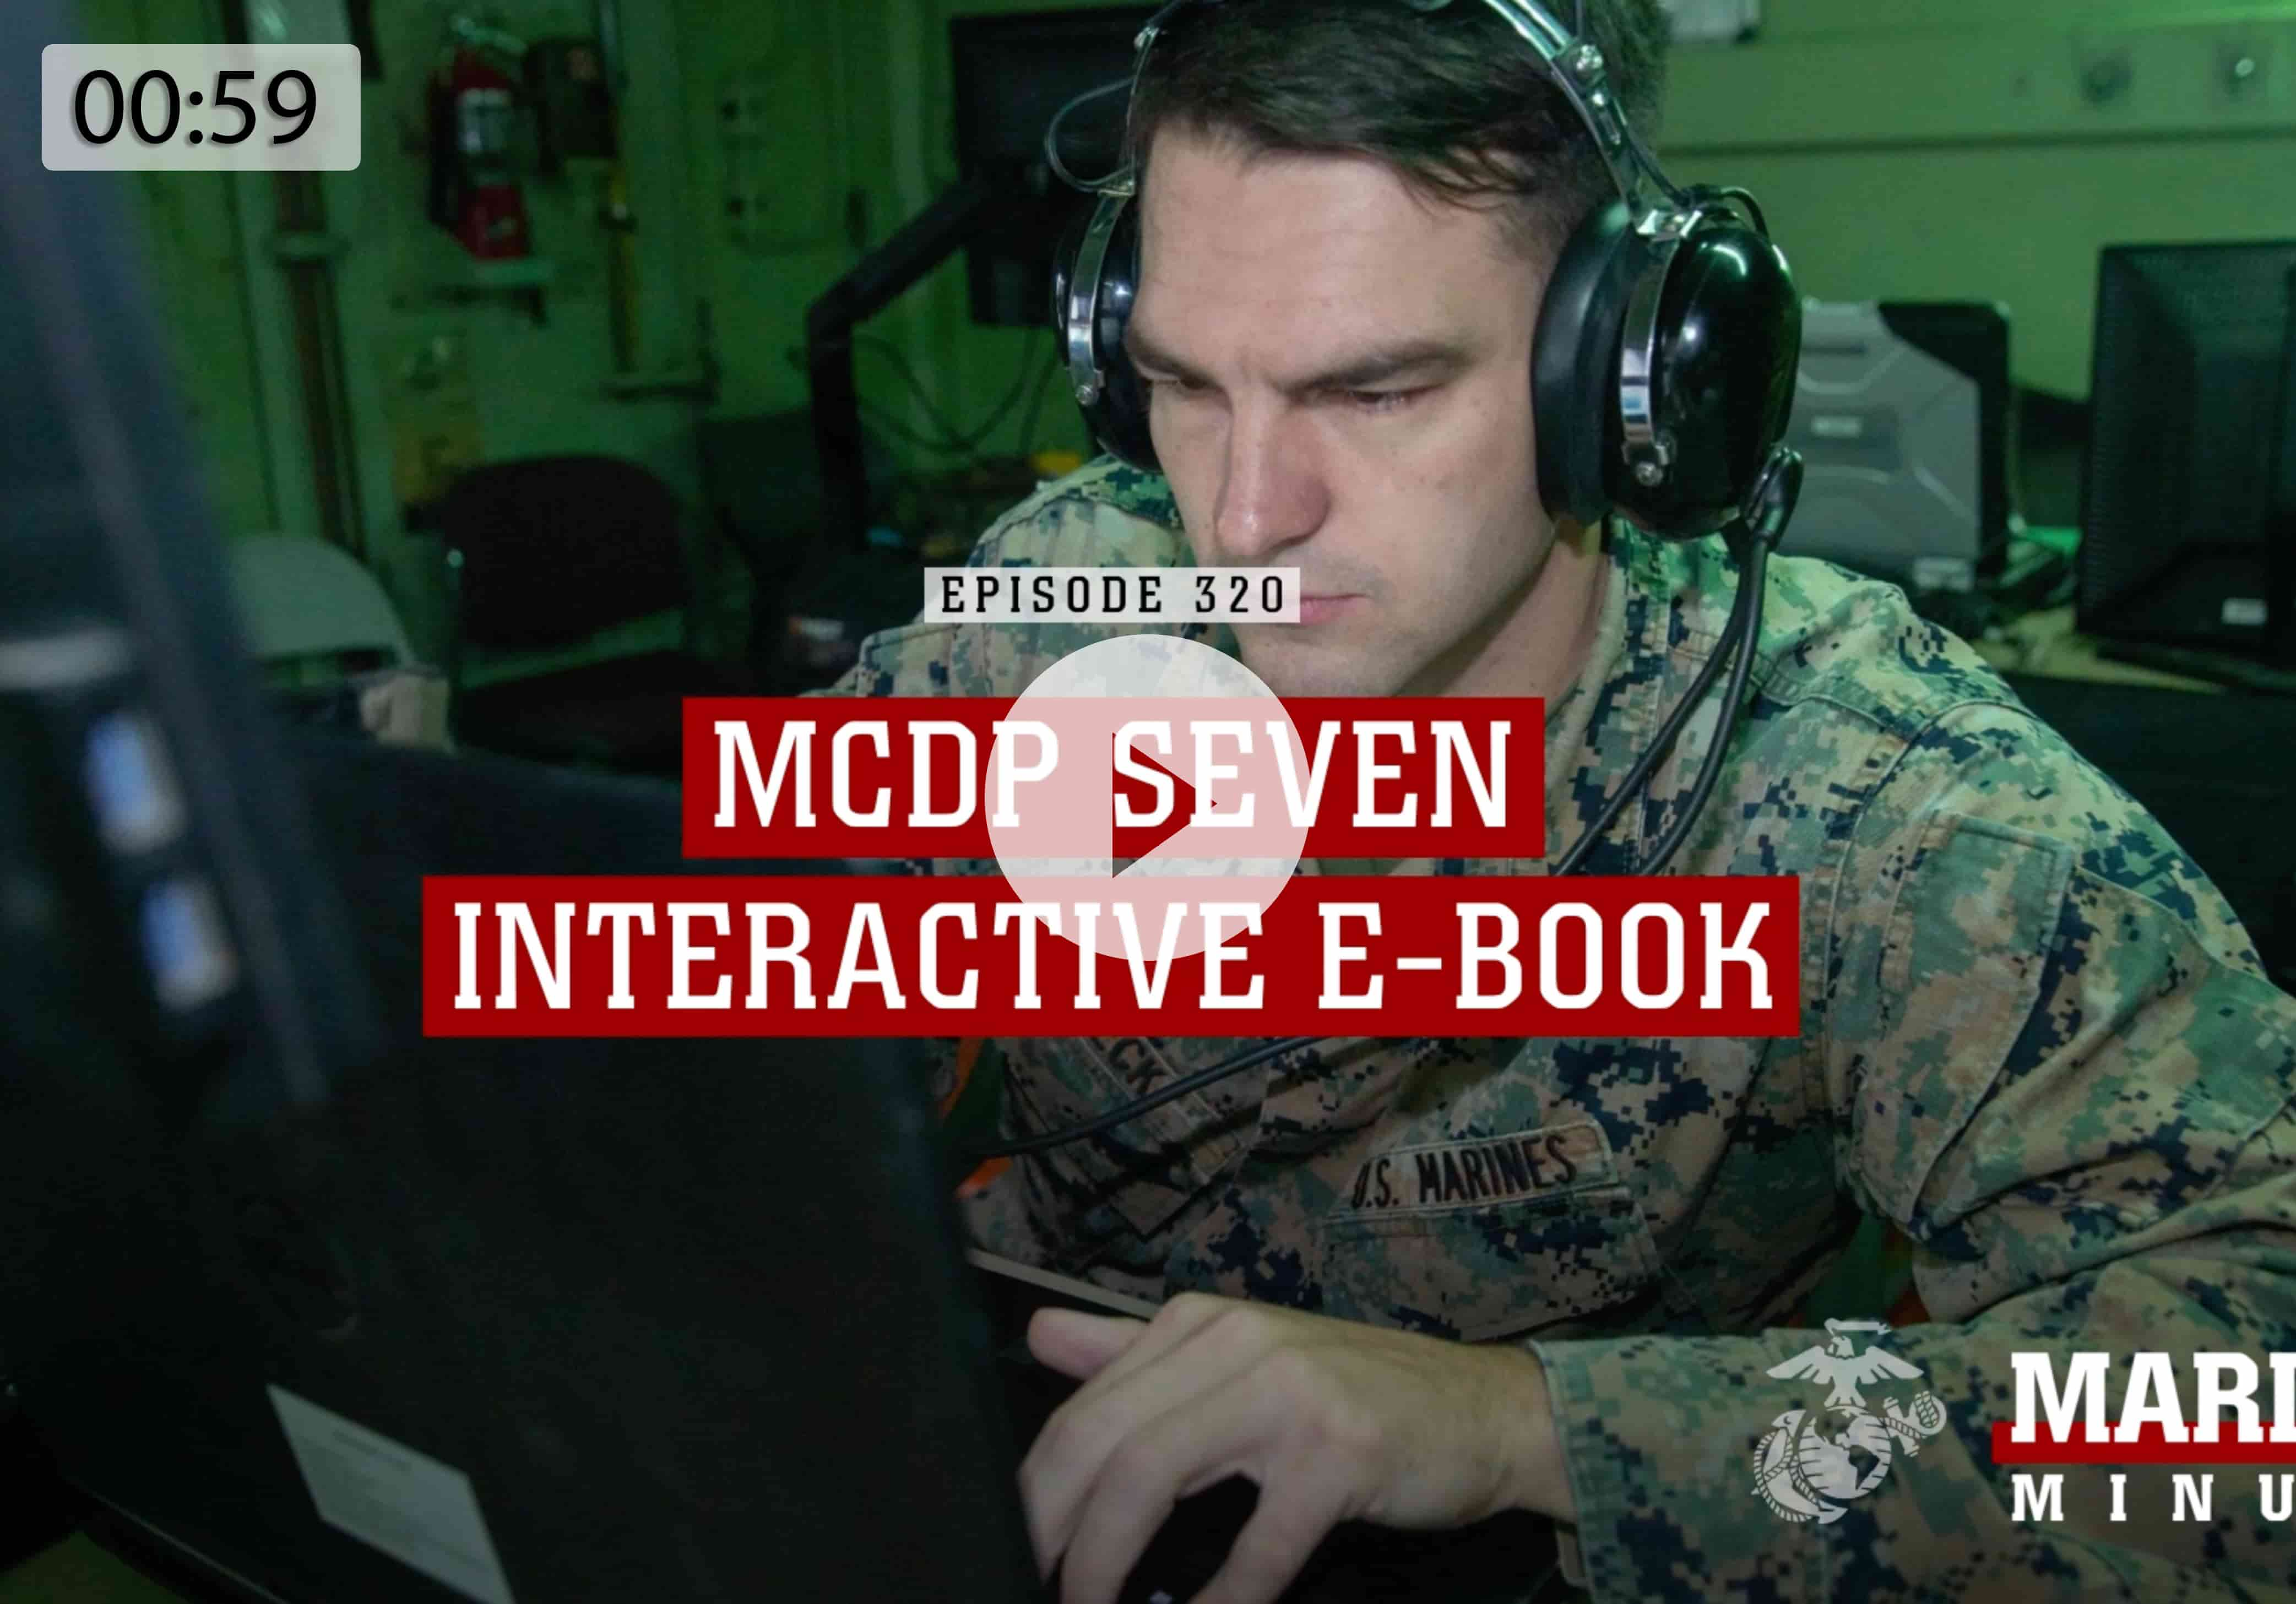 See a video about the U.S. Marine Corps Training and Education Command (TECOM) releasing an interactive e-book